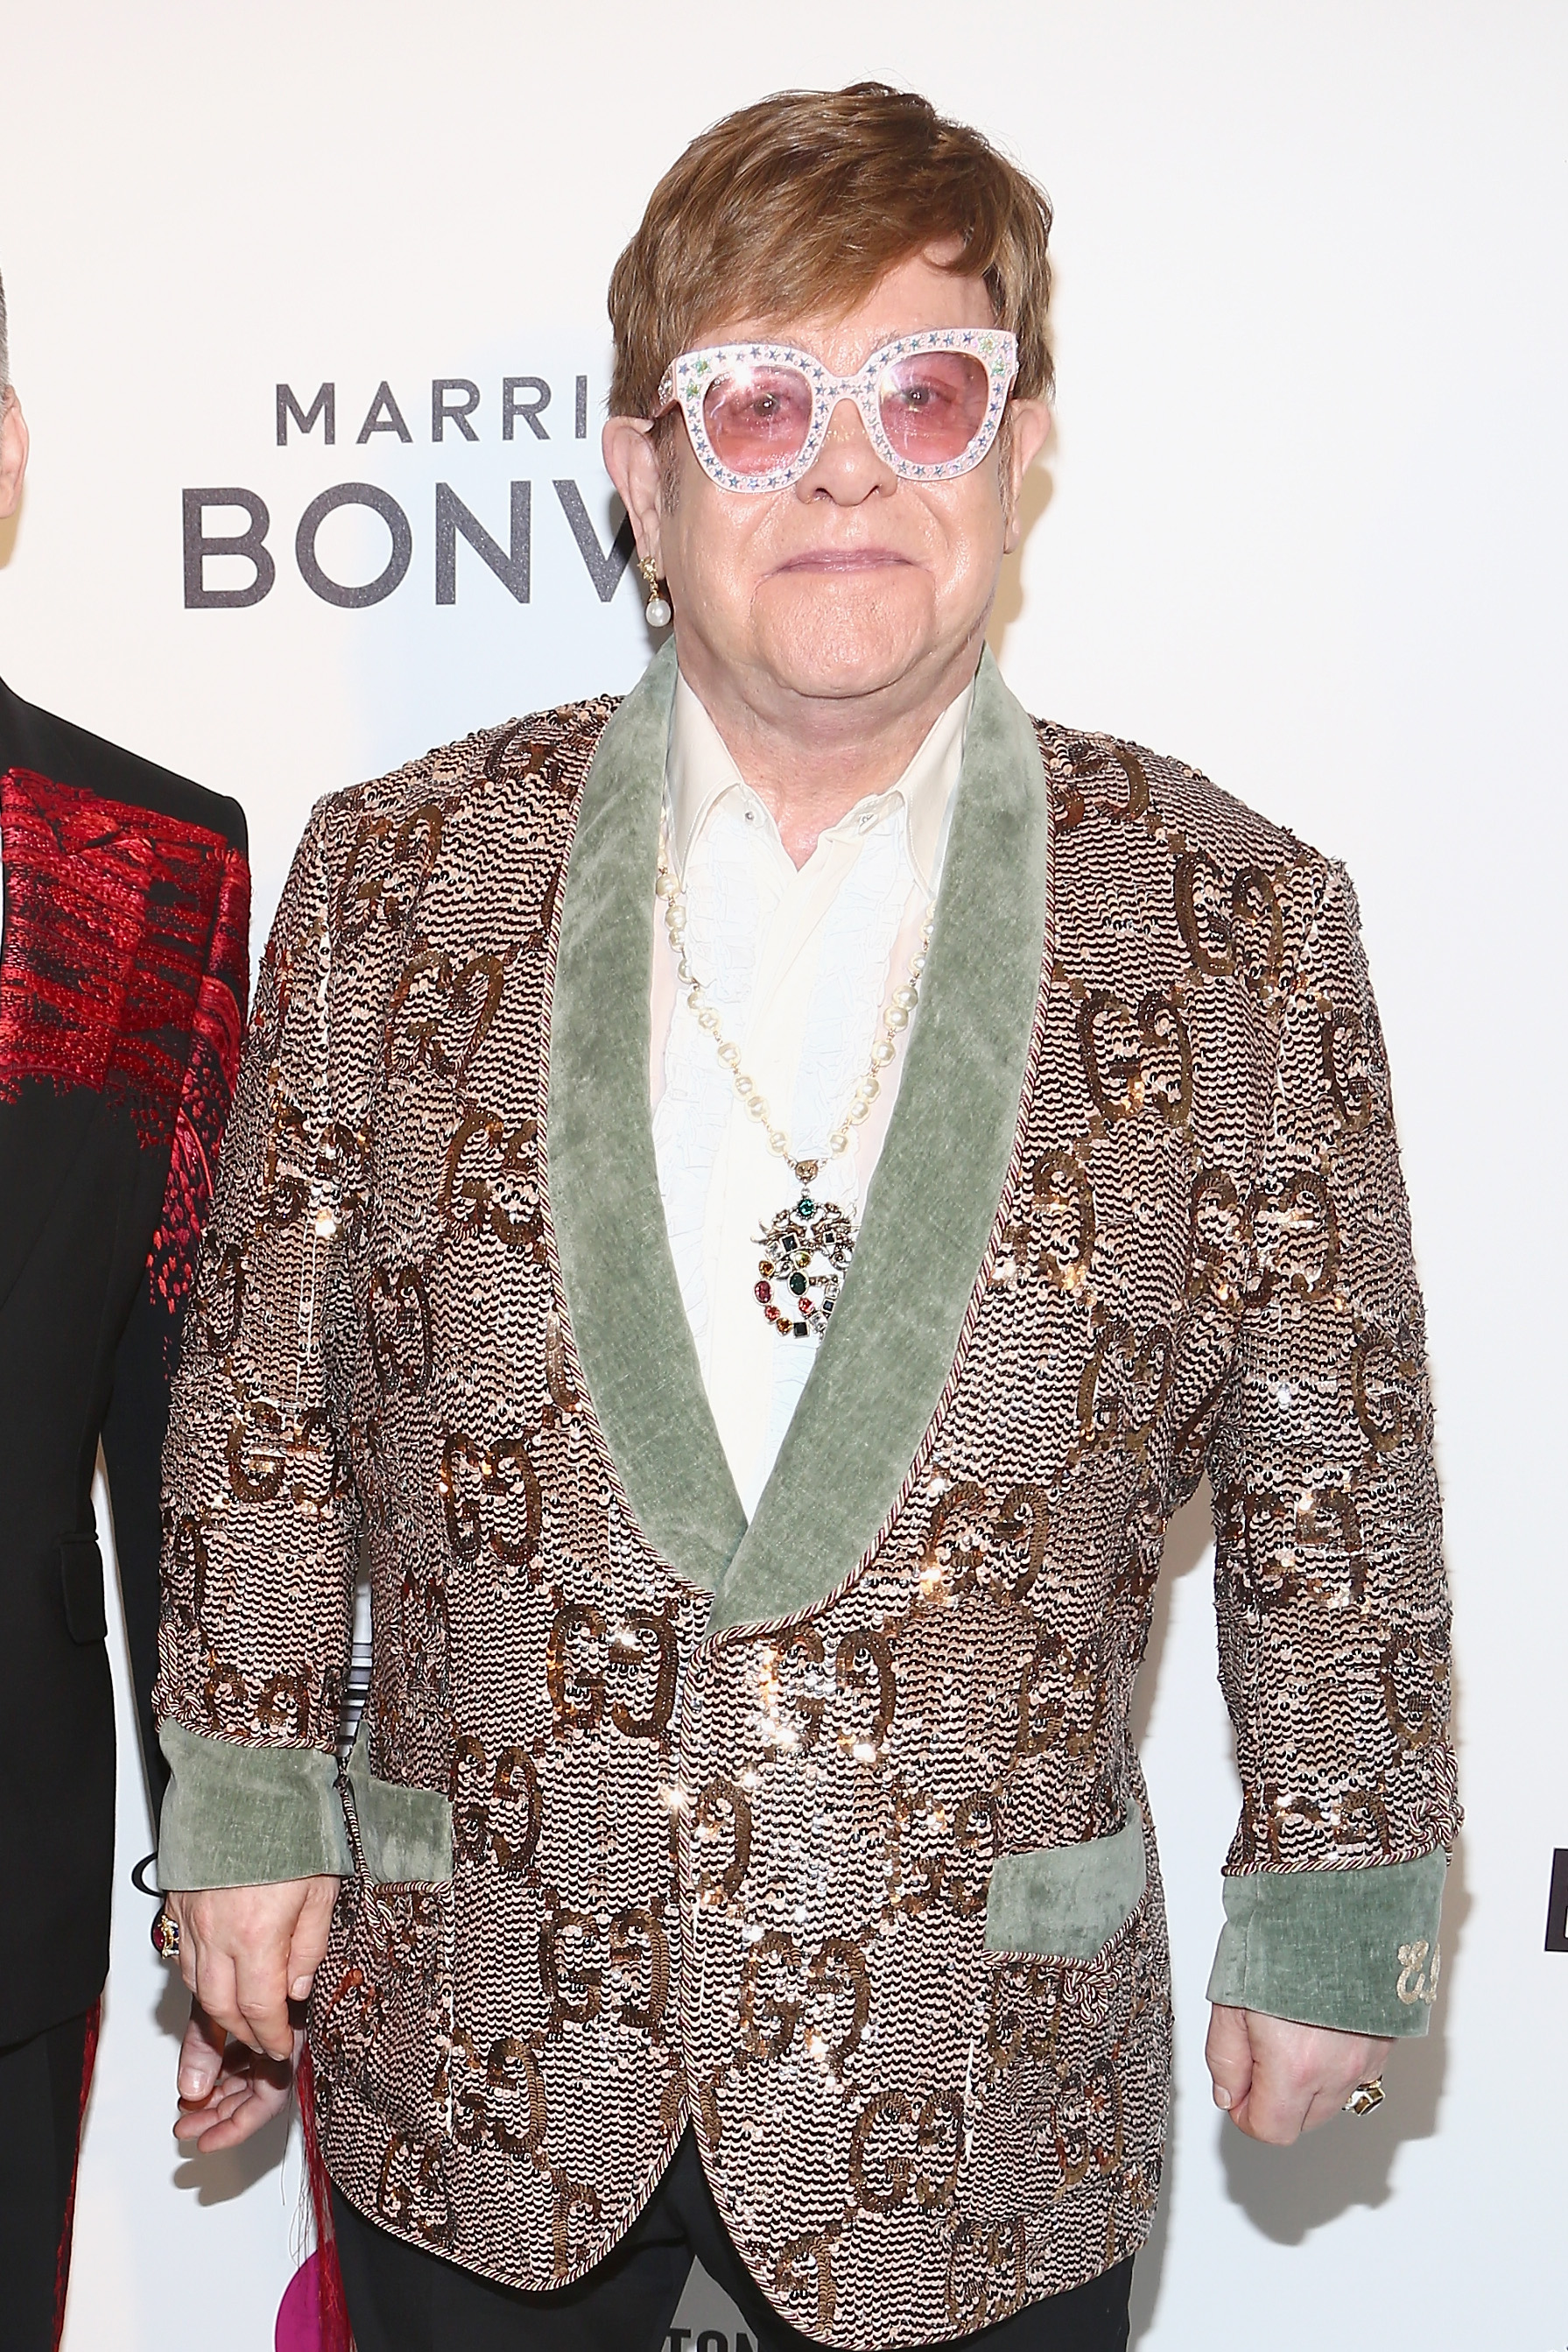 Even the most conservative of Elton John's red carpet looks involve incredible eye wear, which is just one of many reasons why he's so beloved.